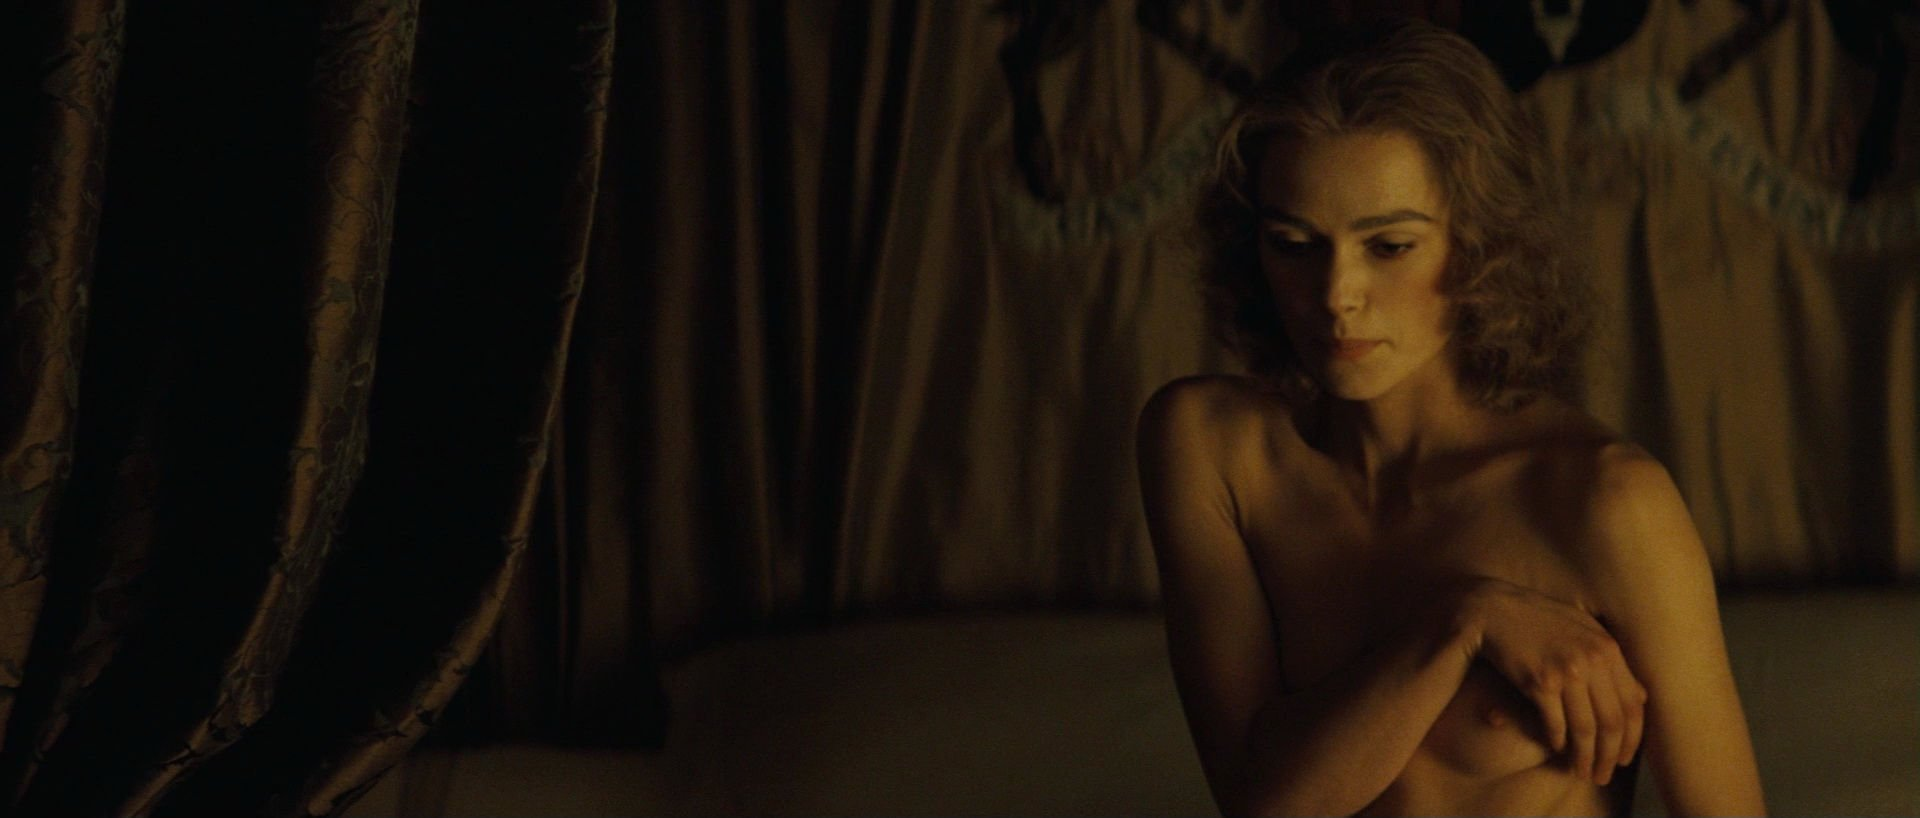 Business Keira knightley nude scene sorry, that